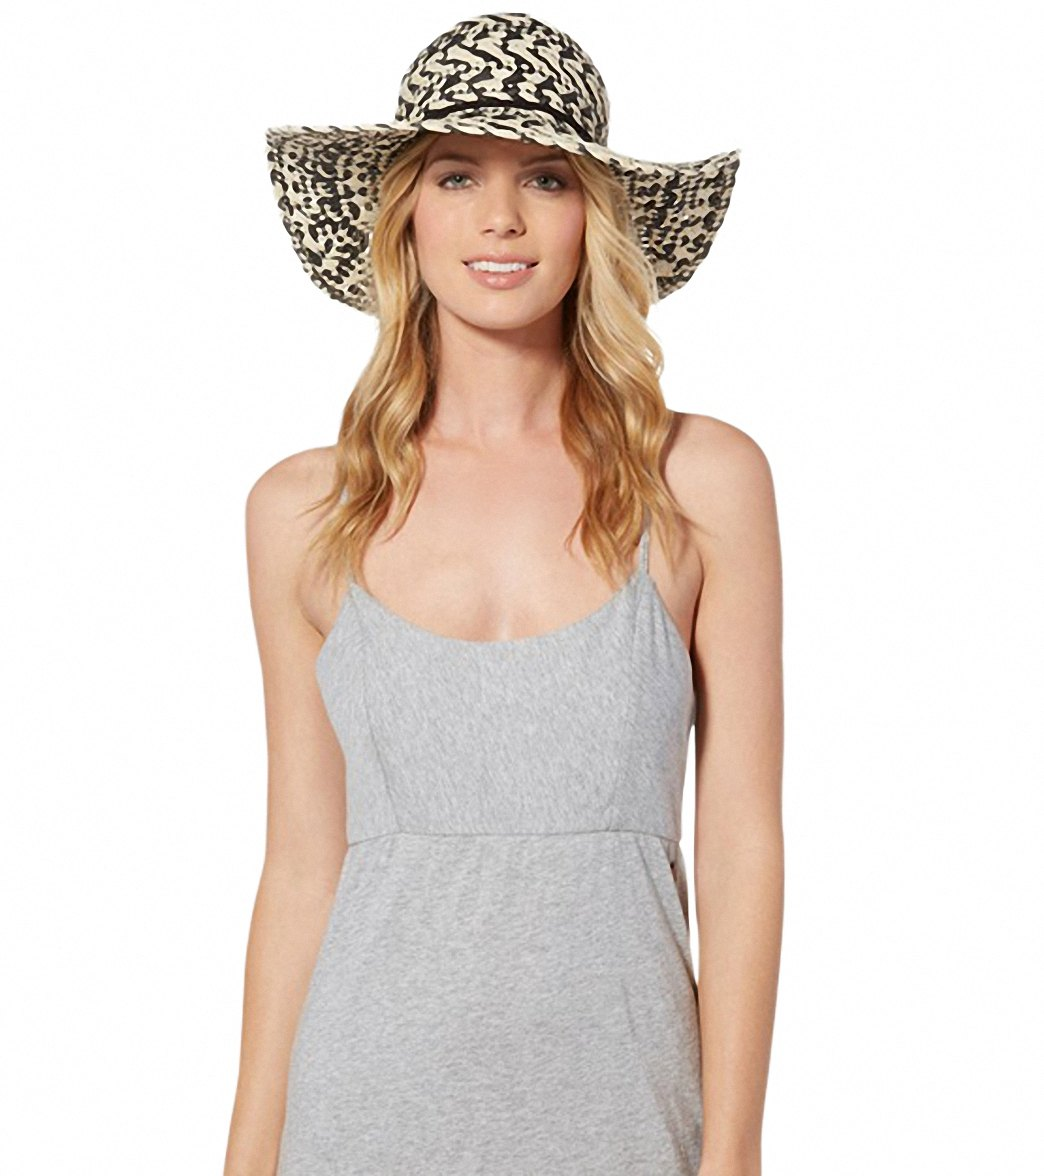 Roxy Summer Time Floppy Straw Hat at SwimOutlet.com b0f39a6b6ac